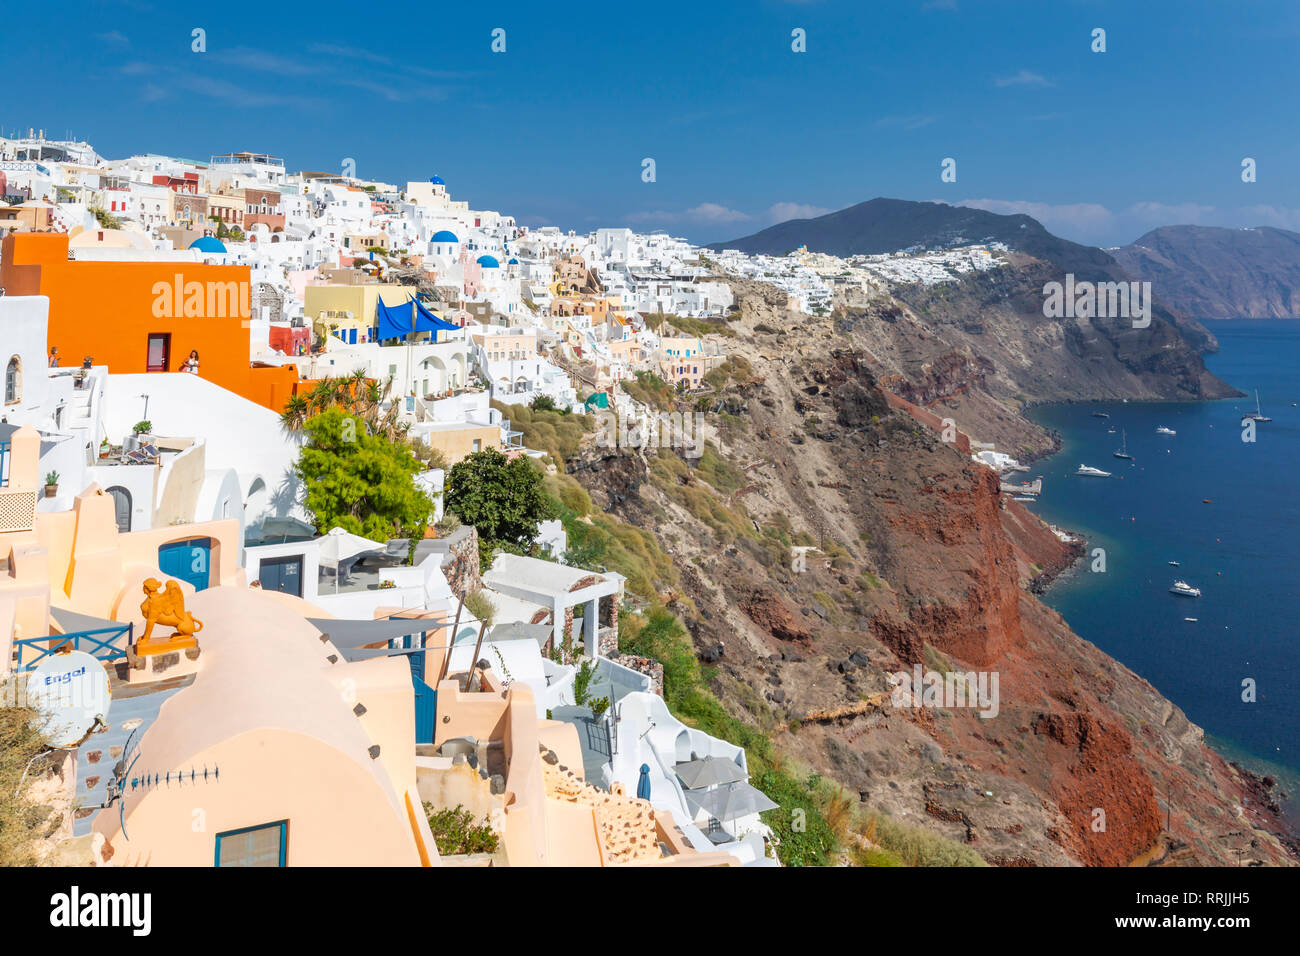 View of white washed house in Oia village, Santorini